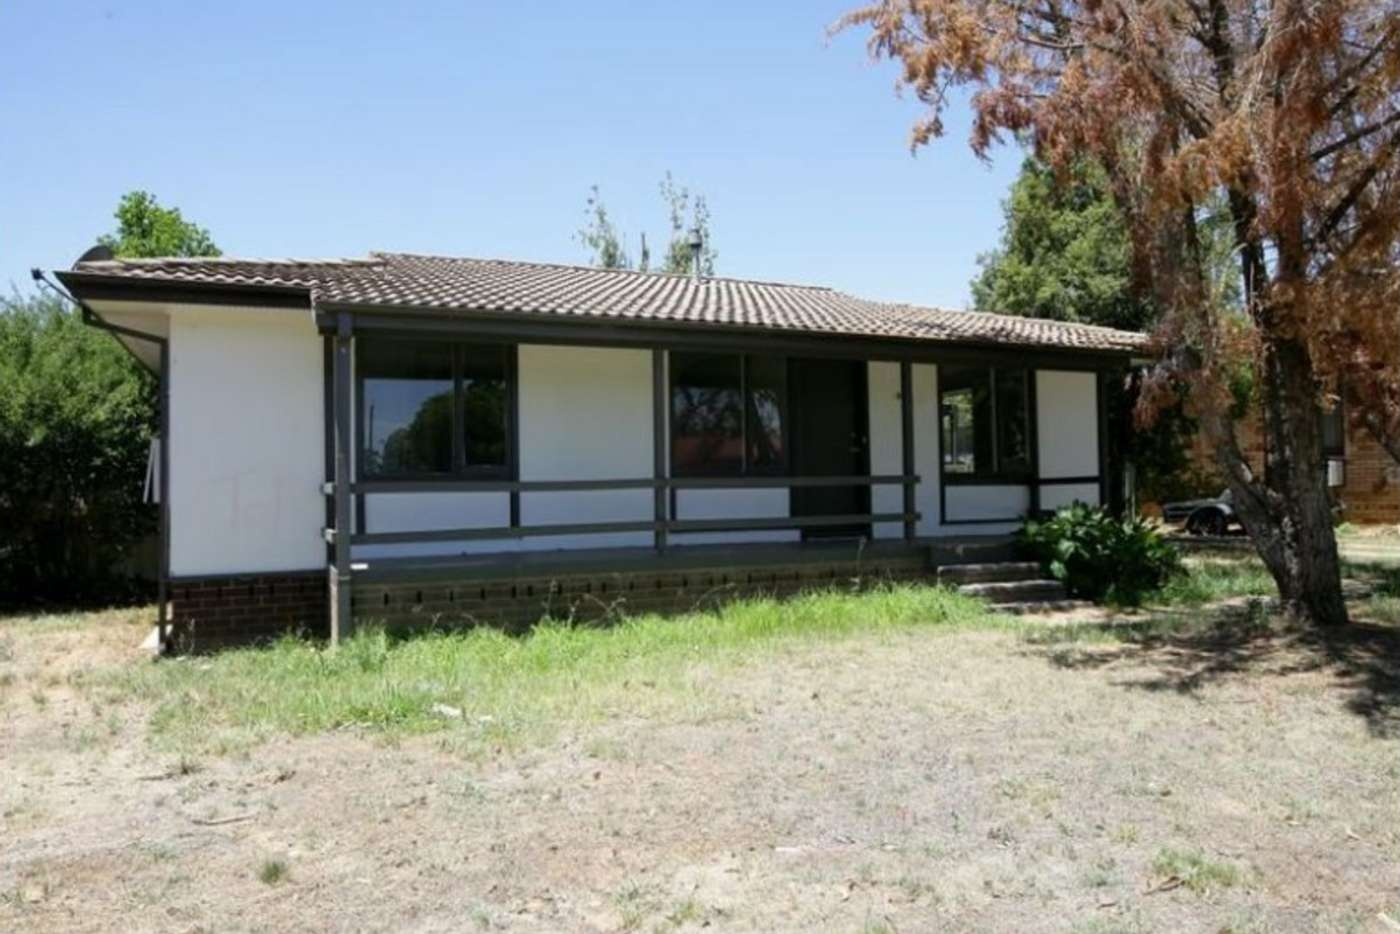 Main view of Homely house listing, 152 Raye Street, Tolland NSW 2650